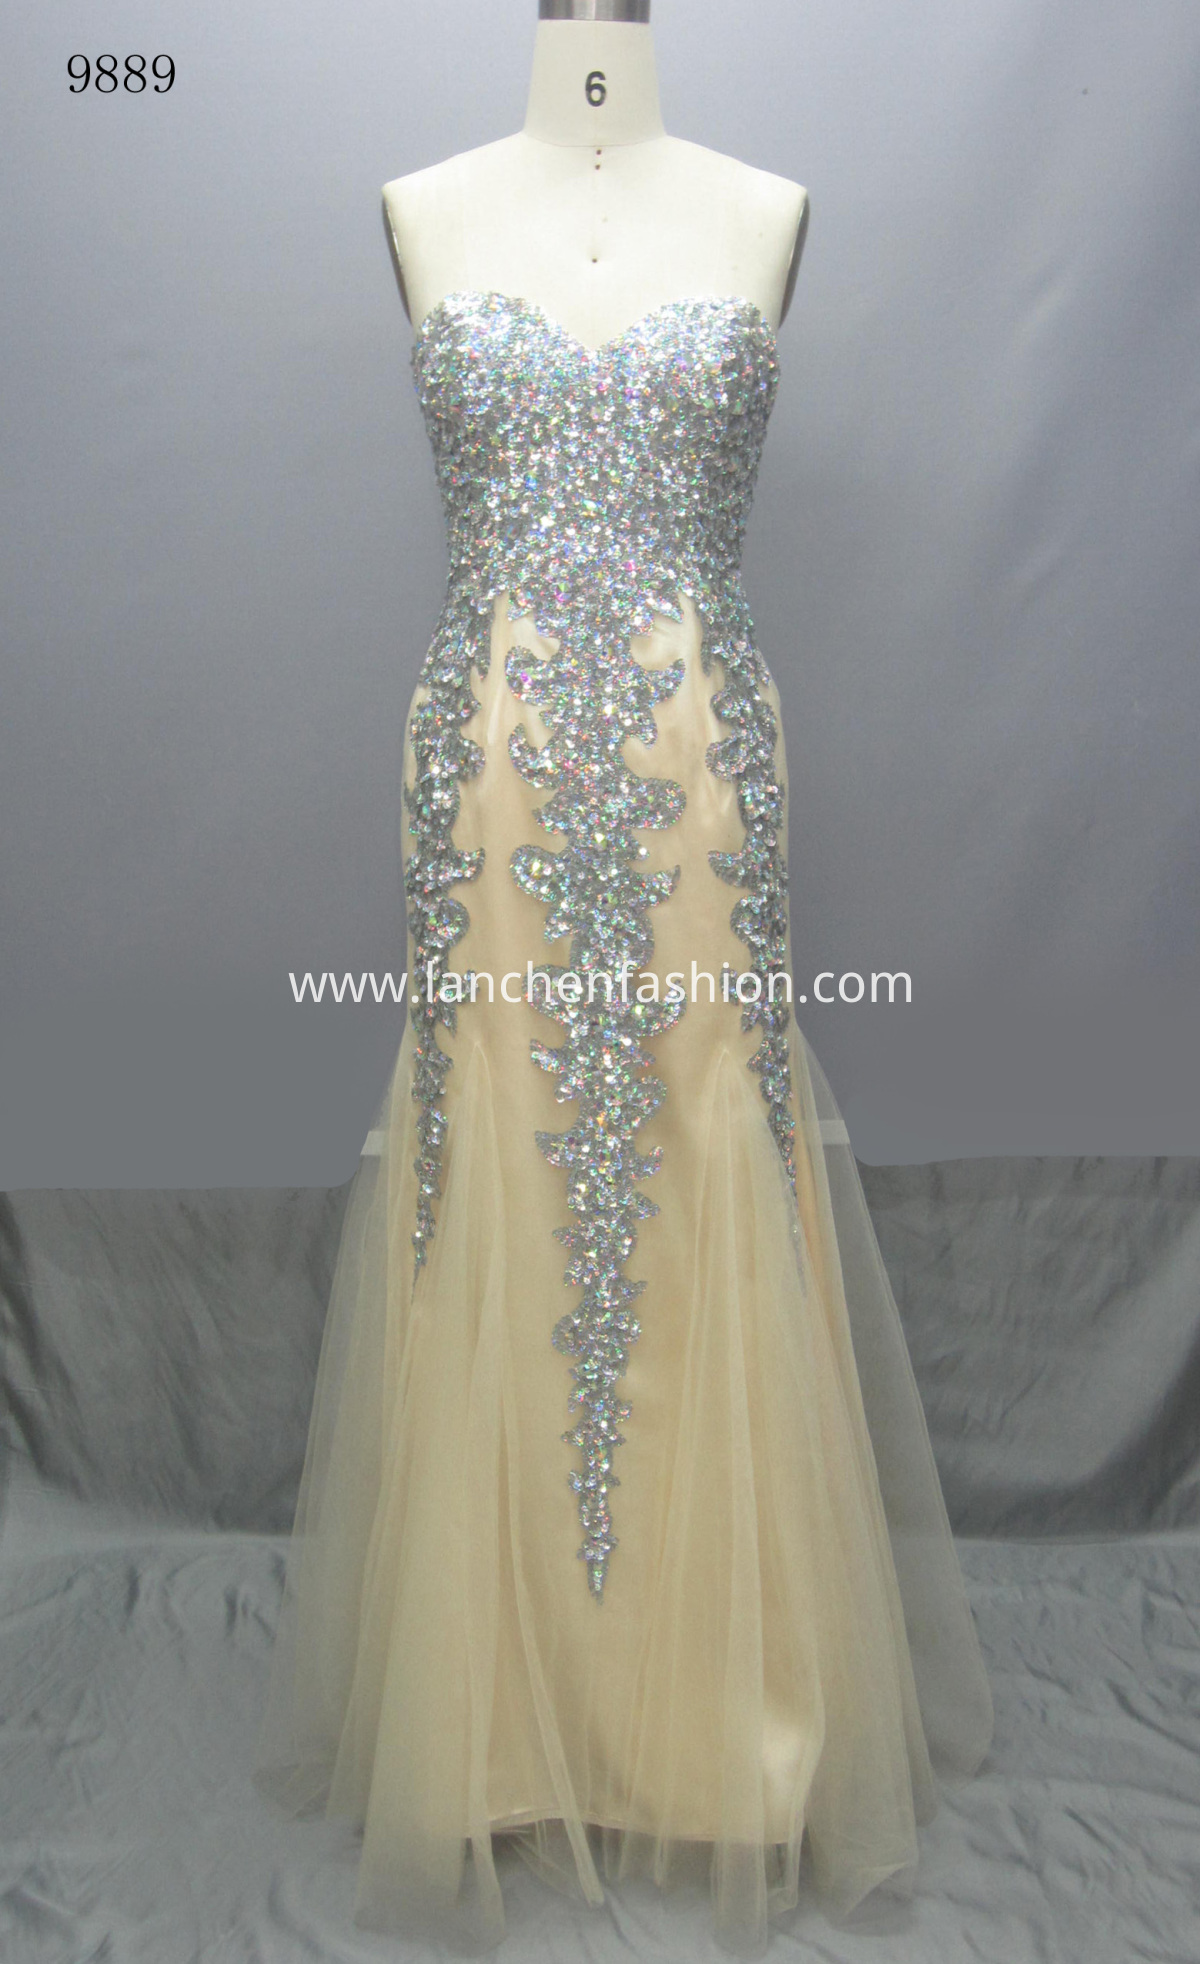 Sweetheart Long Dress